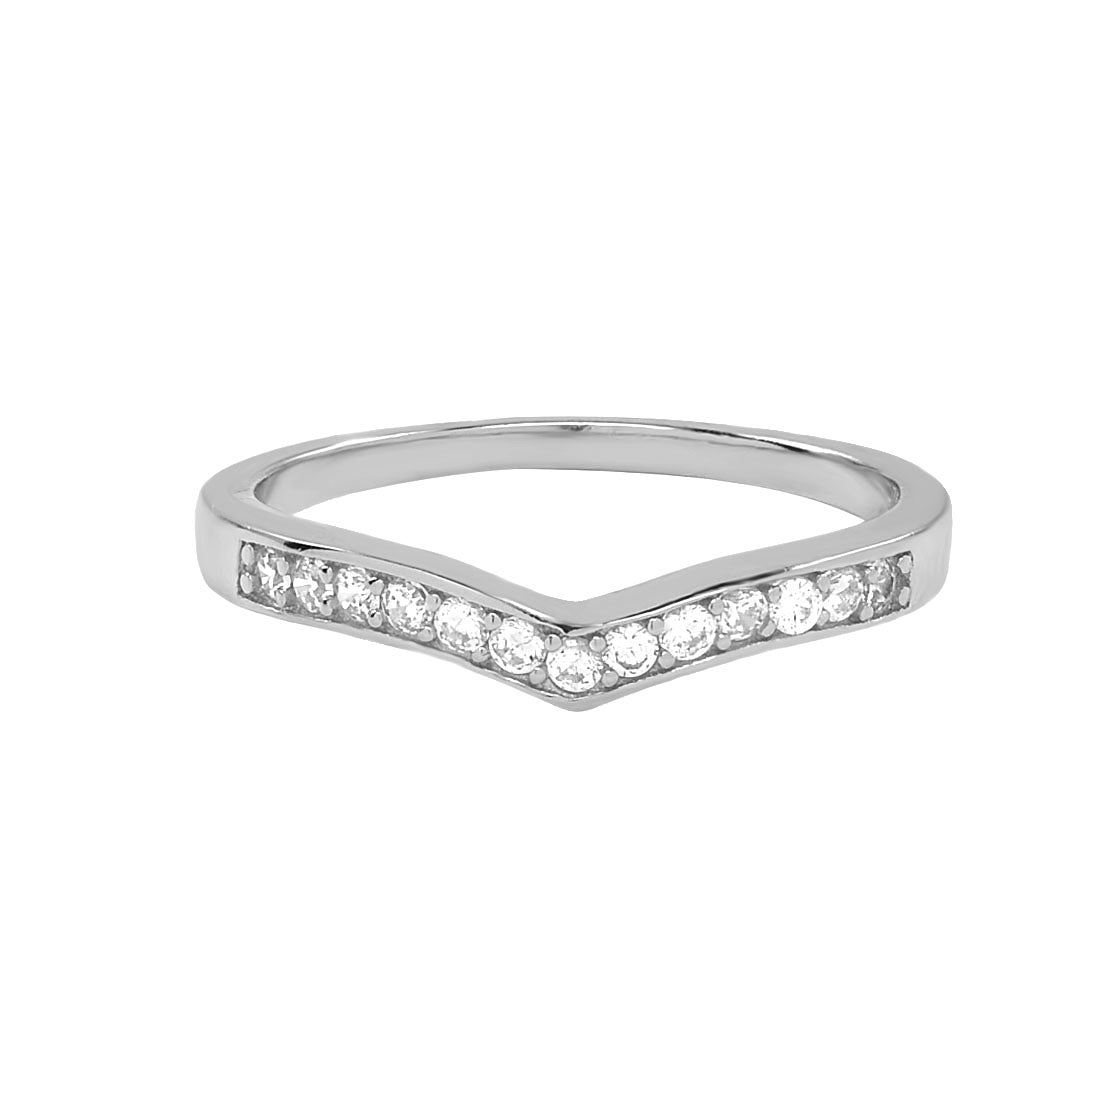 SALE - Thick CZ Chevron Ring